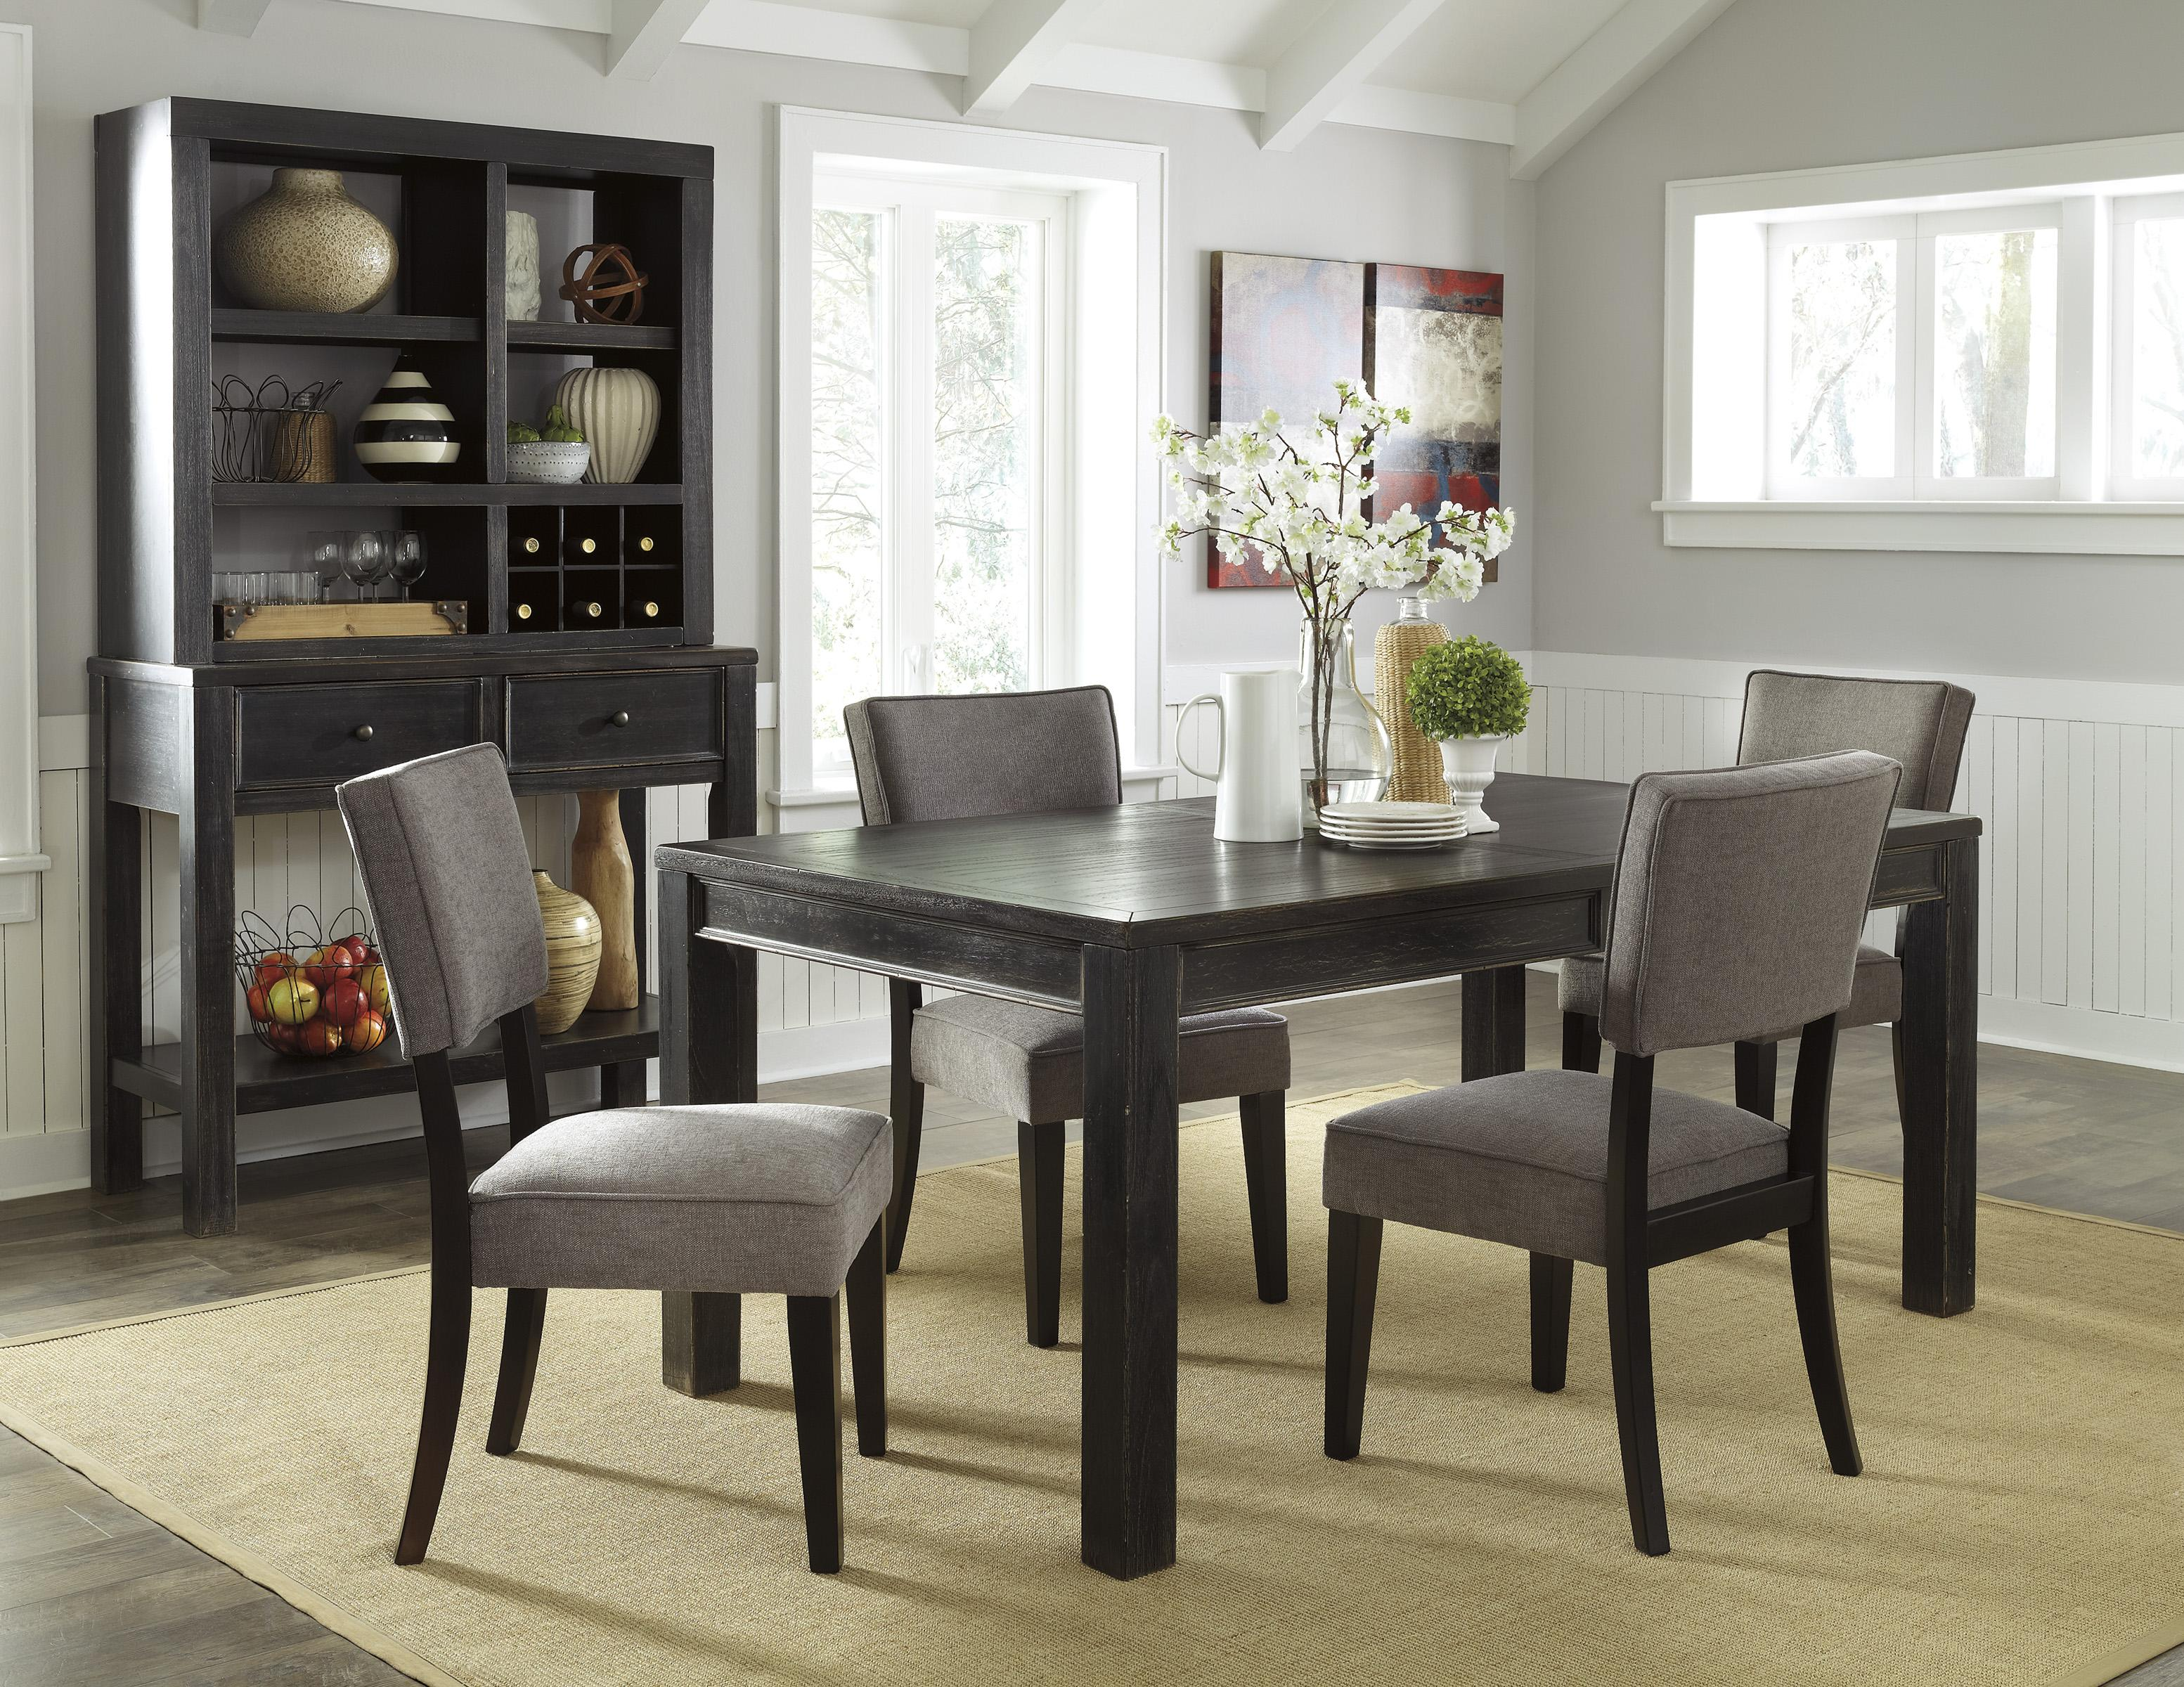 Signature Design by Ashley Gavelston Casual Dining Room Group - Item Number: D532 Dining Room Group 3